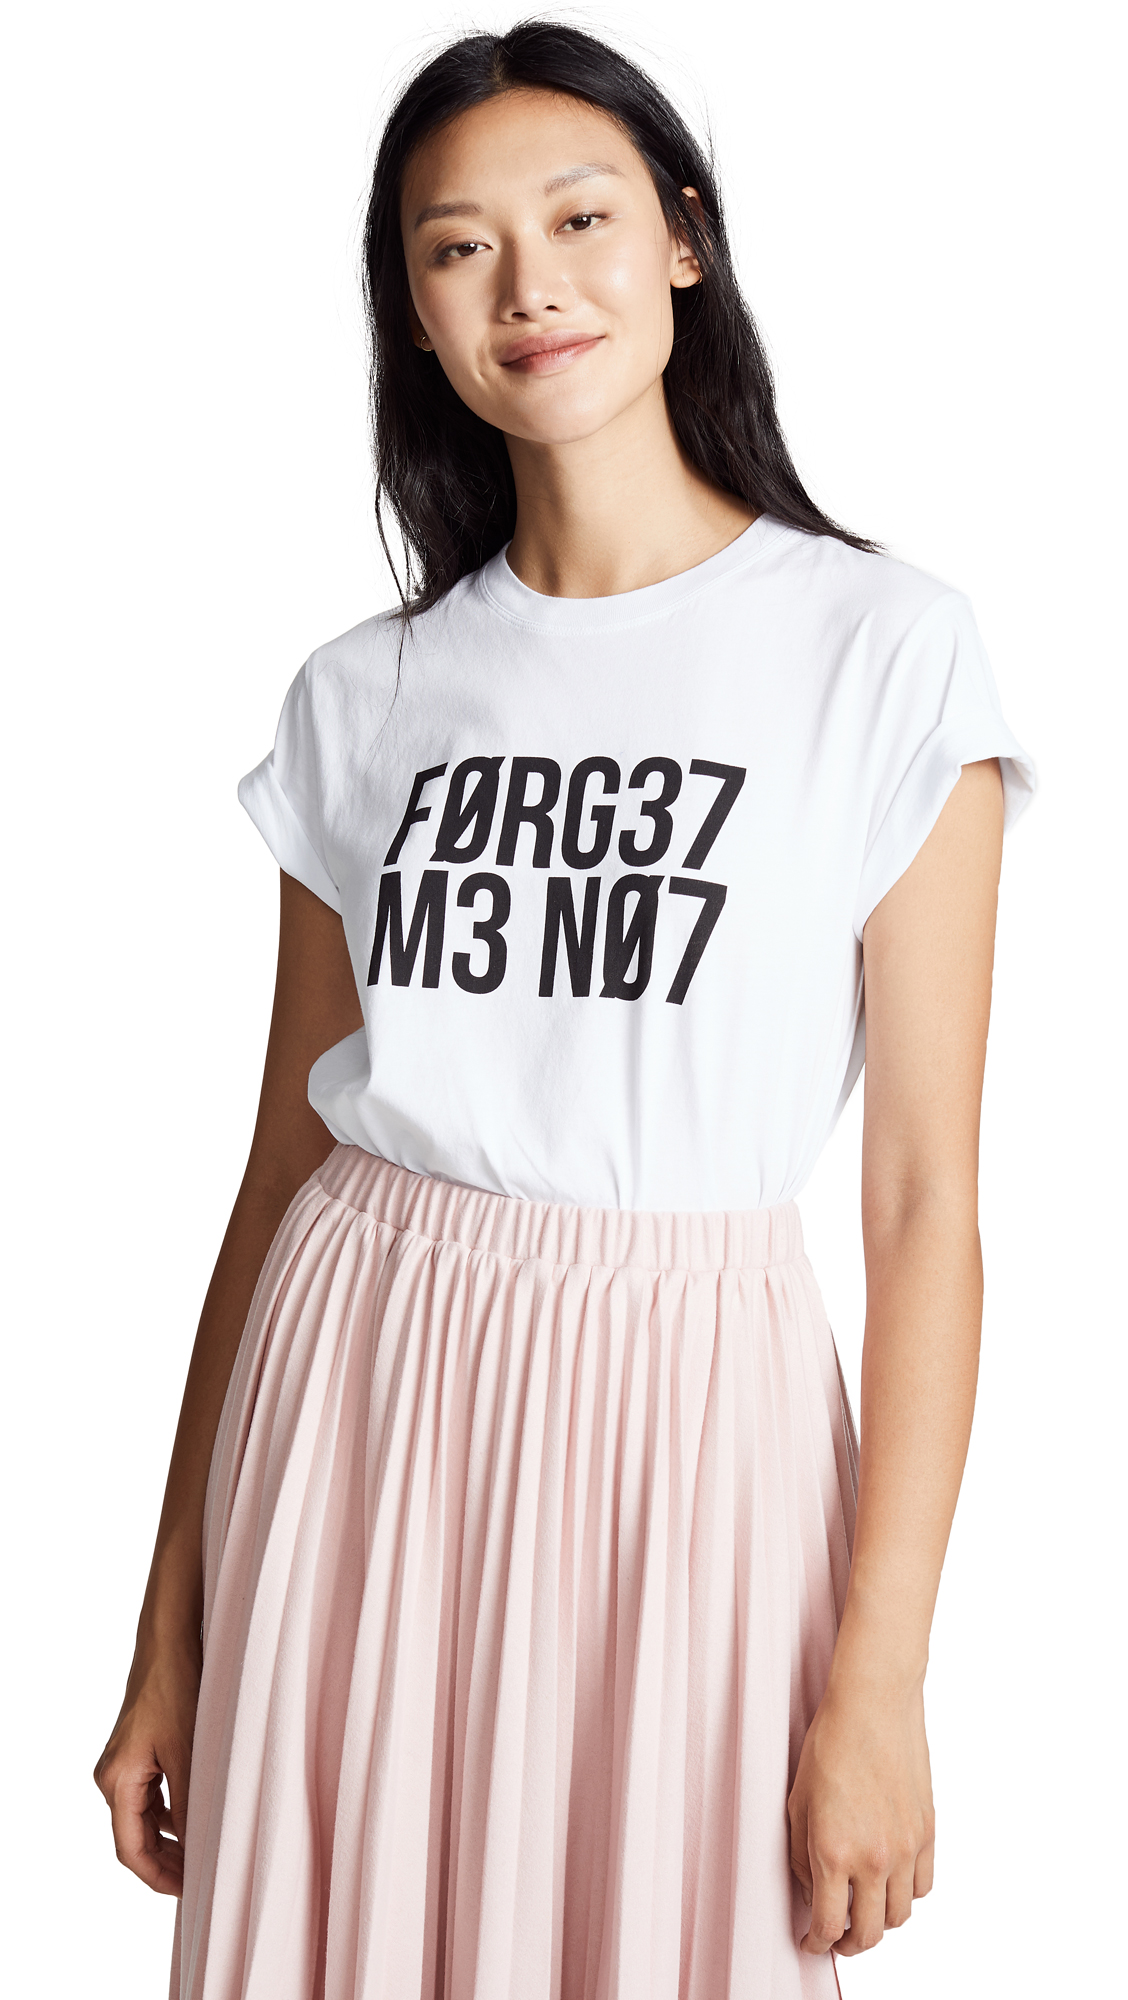 RED VALENTINO Printed Cotton-Jersey T-Shirt, White